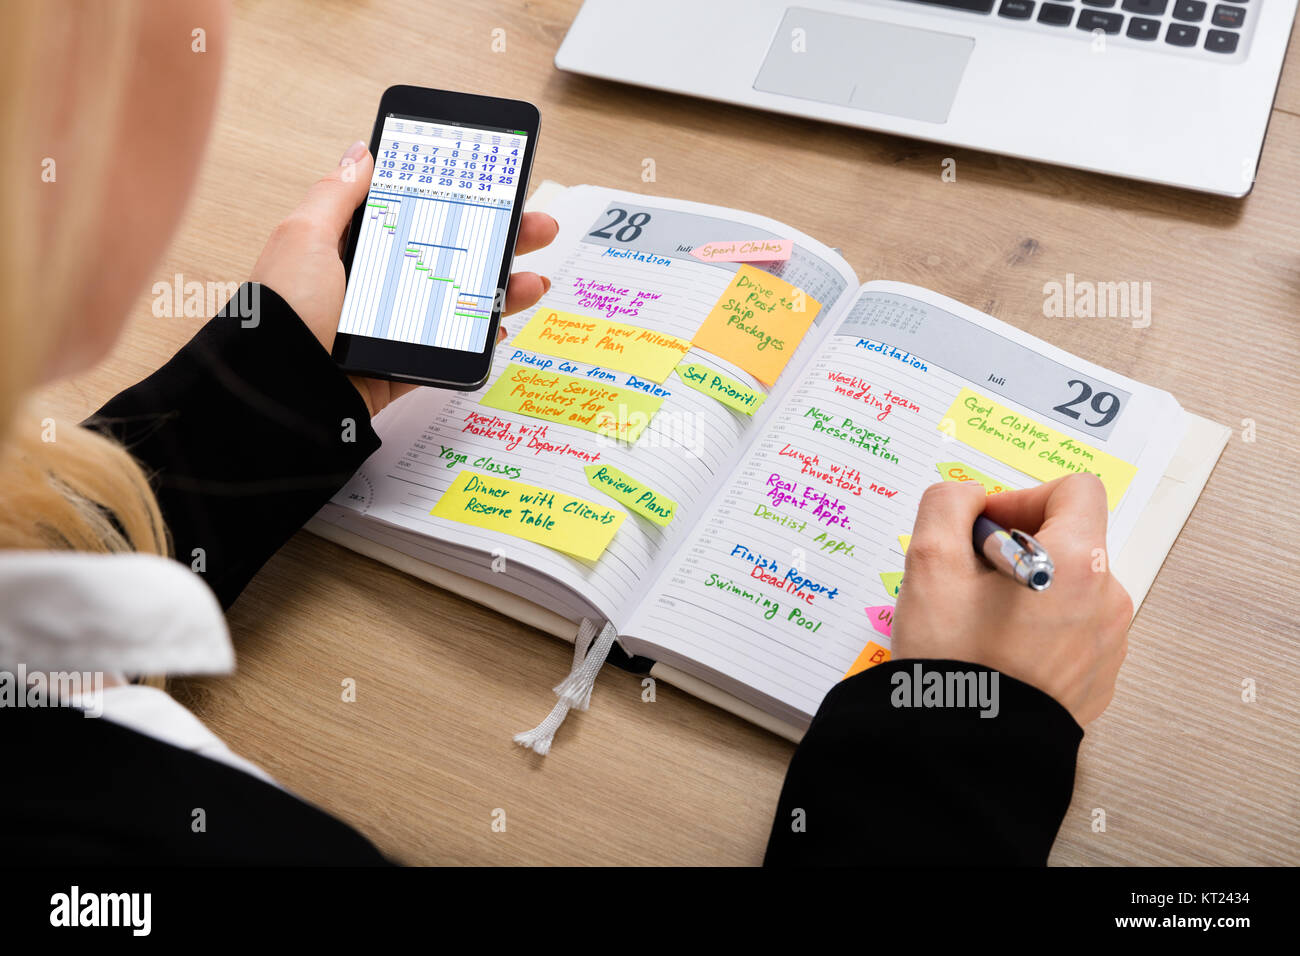 Businesswoman With Mobilephone Writing Schedule In Diary Stock Photo